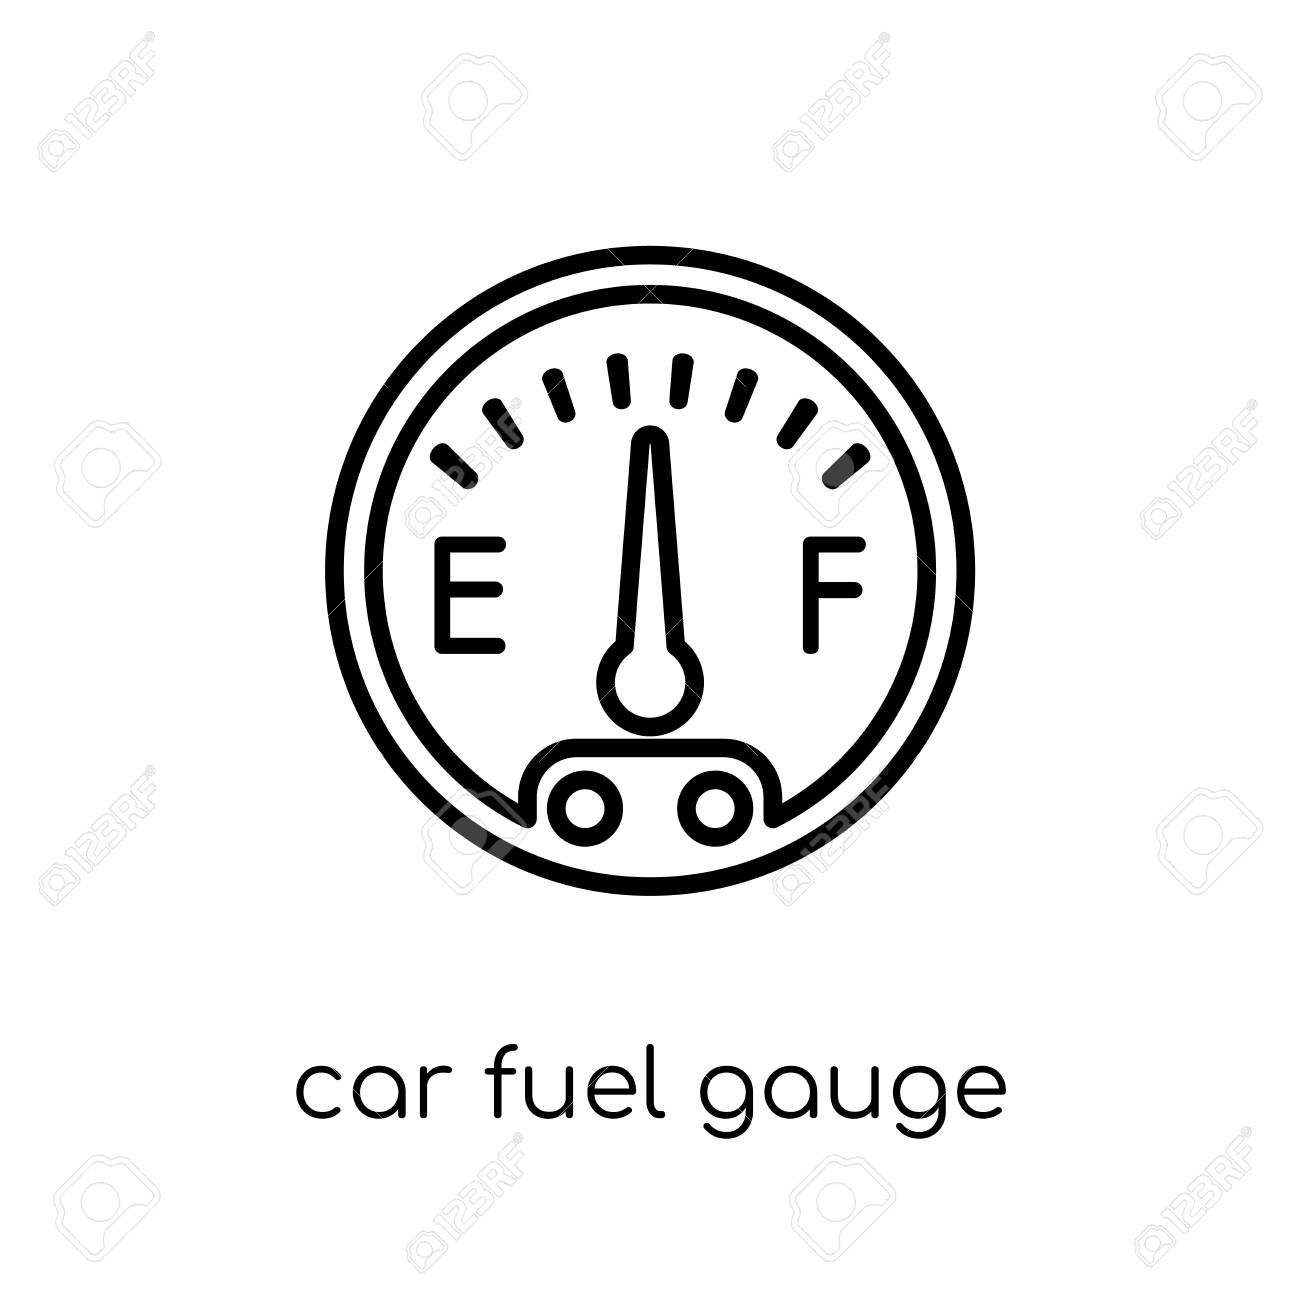 car fuel gauge icon. Trendy modern flat linear vector car fuel gauge icon on white background from thin line Car parts collection, outline vector illustration - 112418041